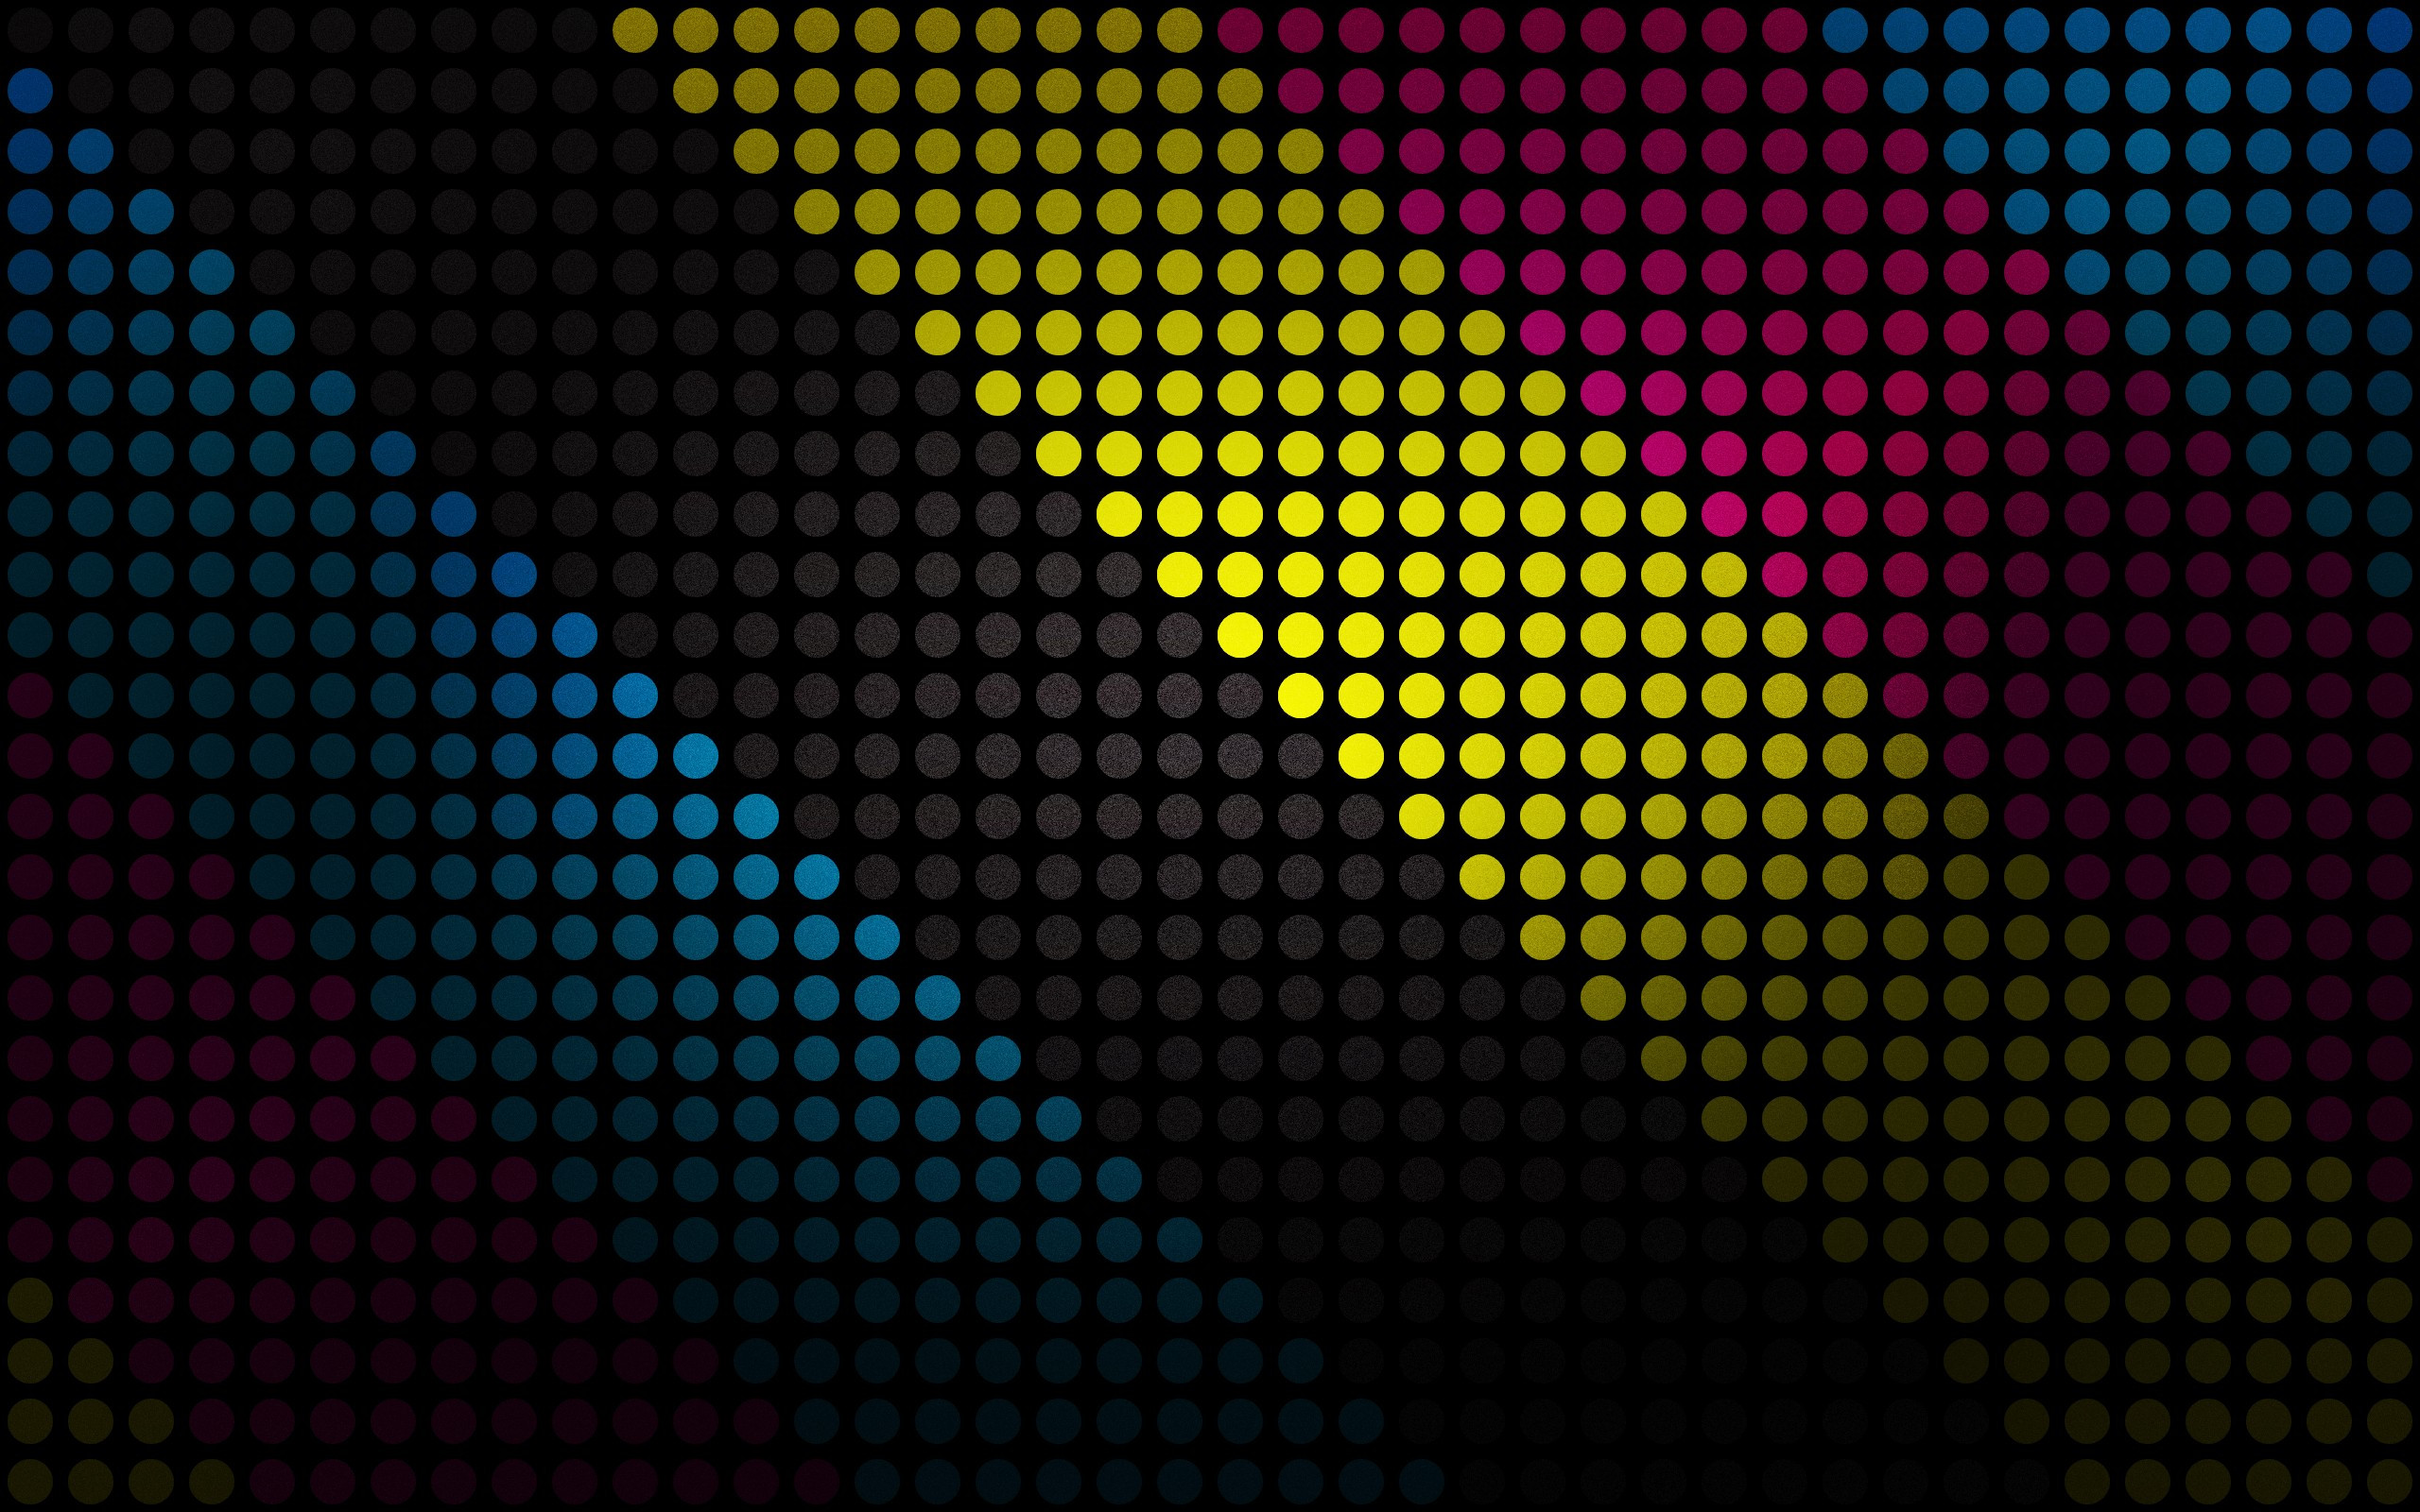 Android Wallpaper for AMOLED displays